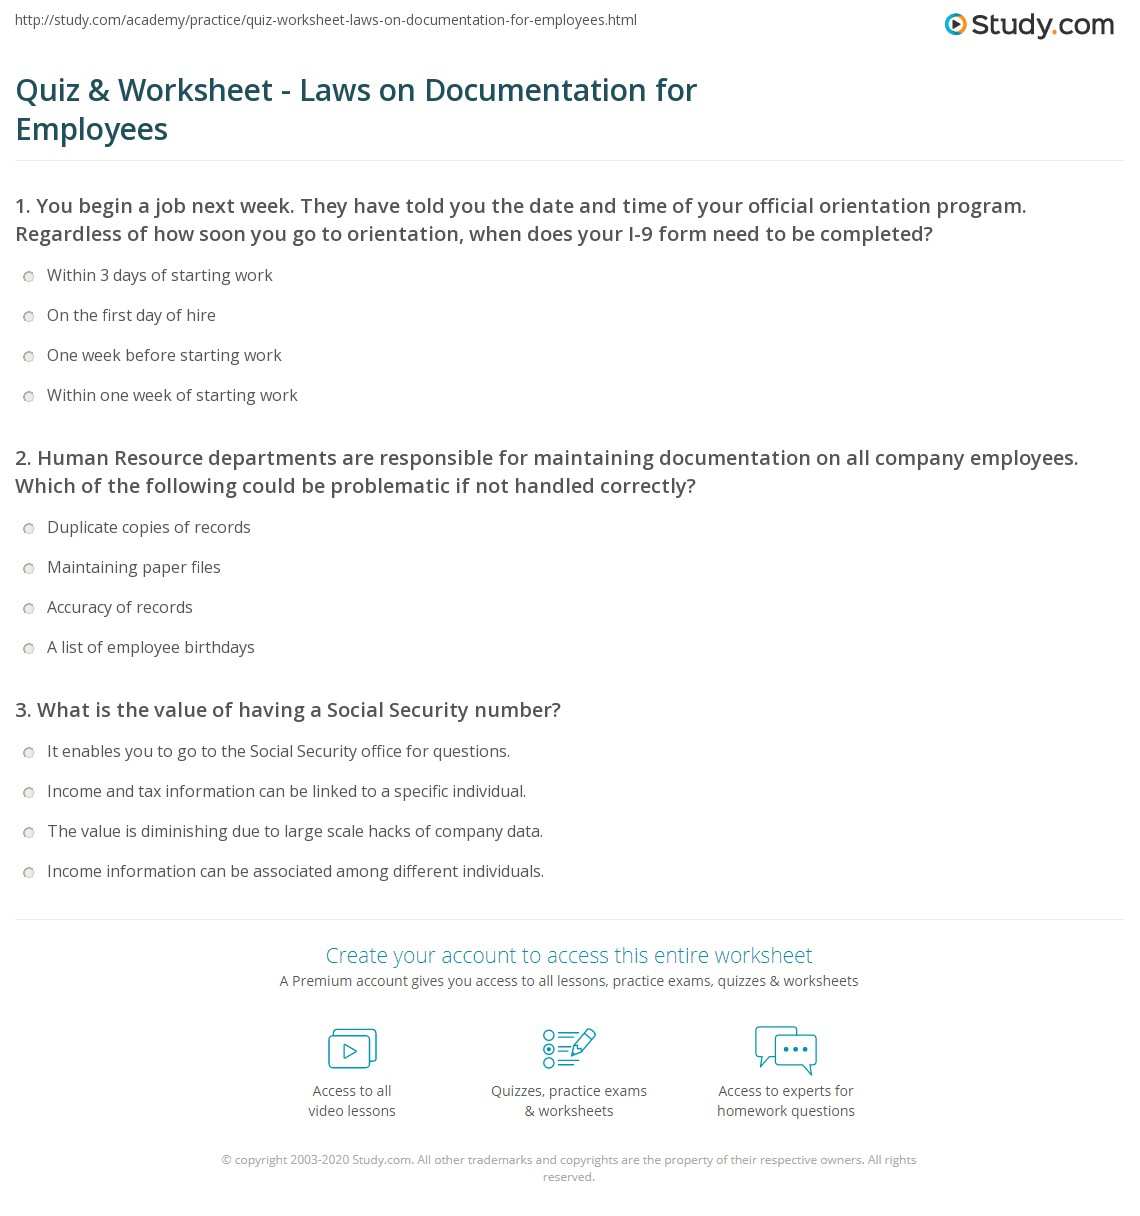 Quiz Worksheet Laws On Documentation For Employees Study